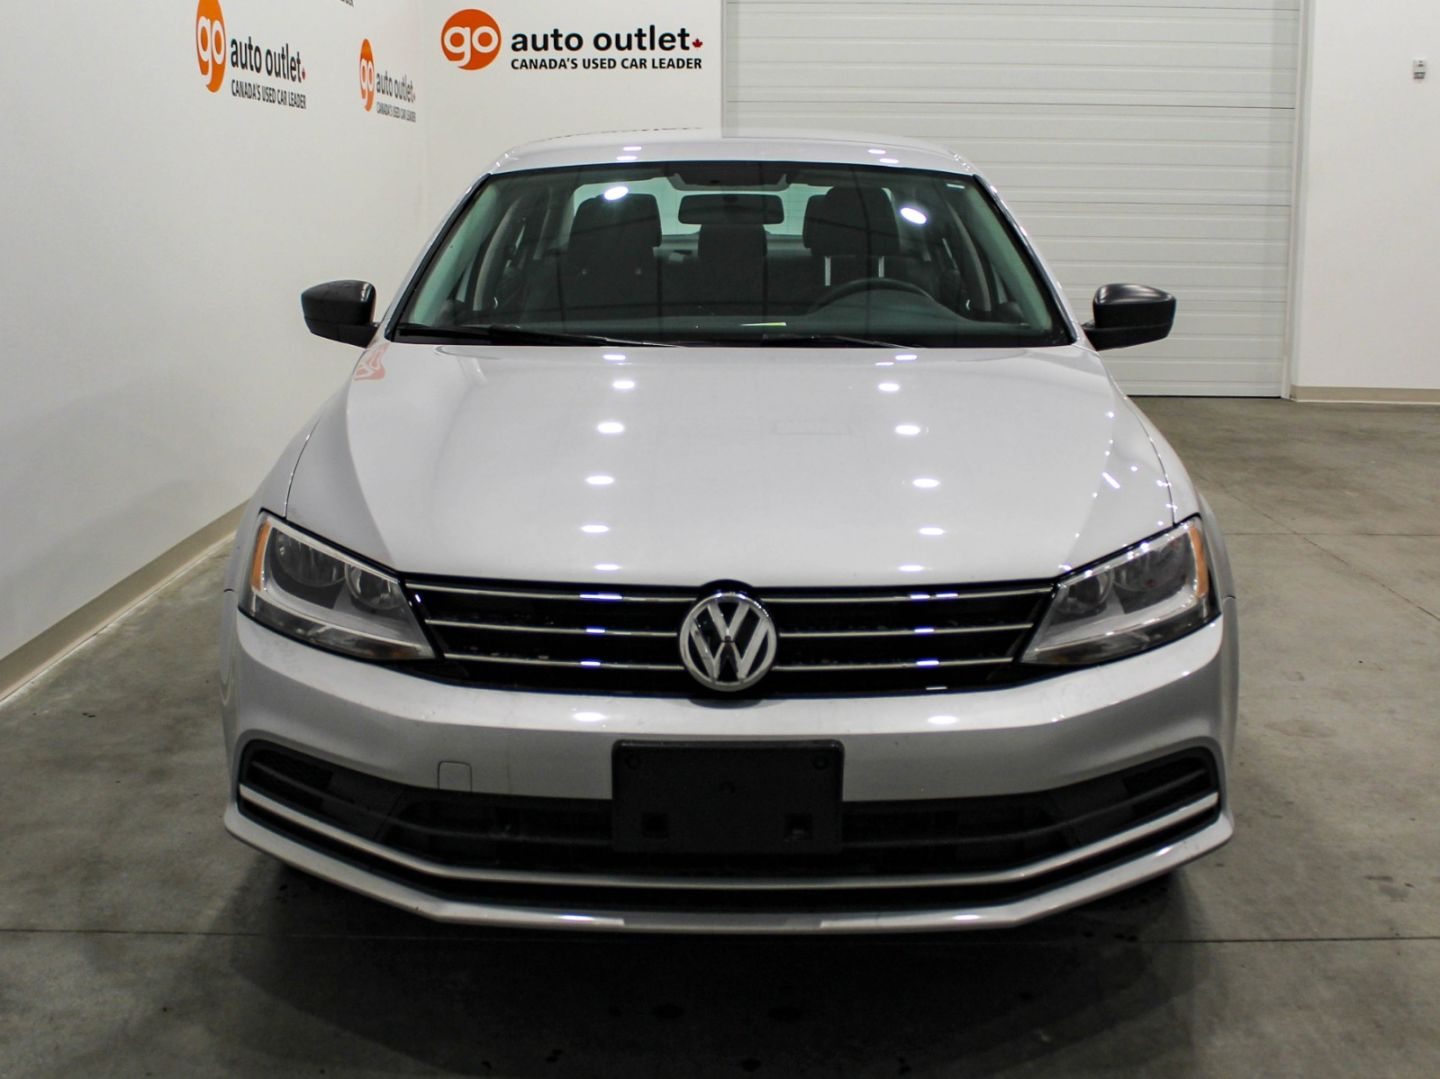 2016 Volkswagen Jetta Sedan Trendline for sale in Edmonton, Alberta